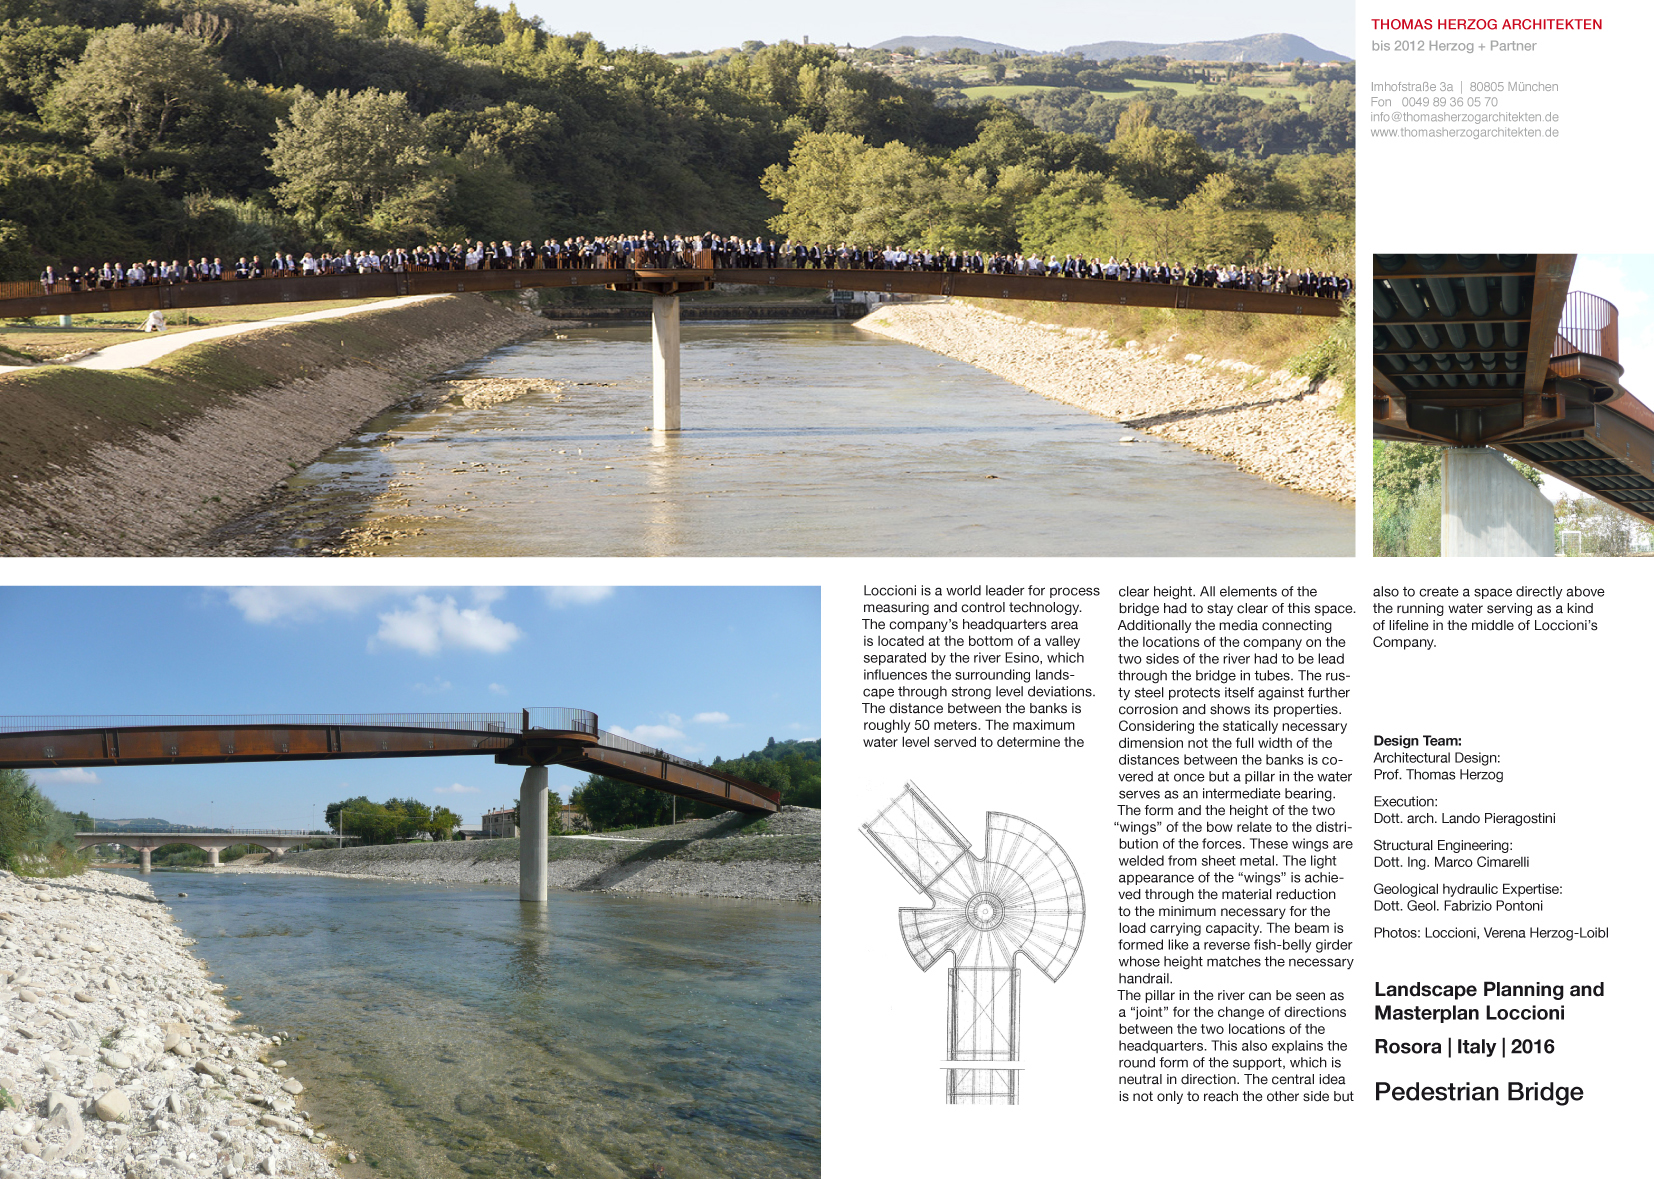 Pedestrian Bridge Rosora IT 2016 Landscape Planning and Masterplan Loccioni